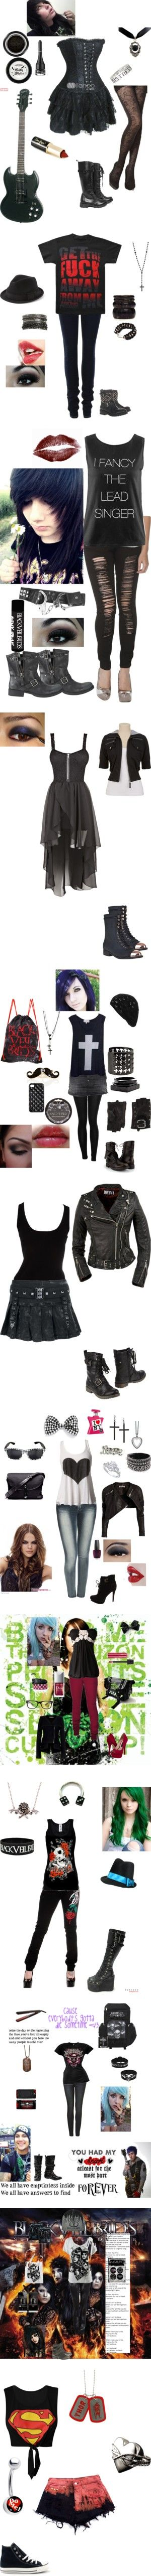 """Emo"" by suicidalmemories ❤ liked on Polyvore"